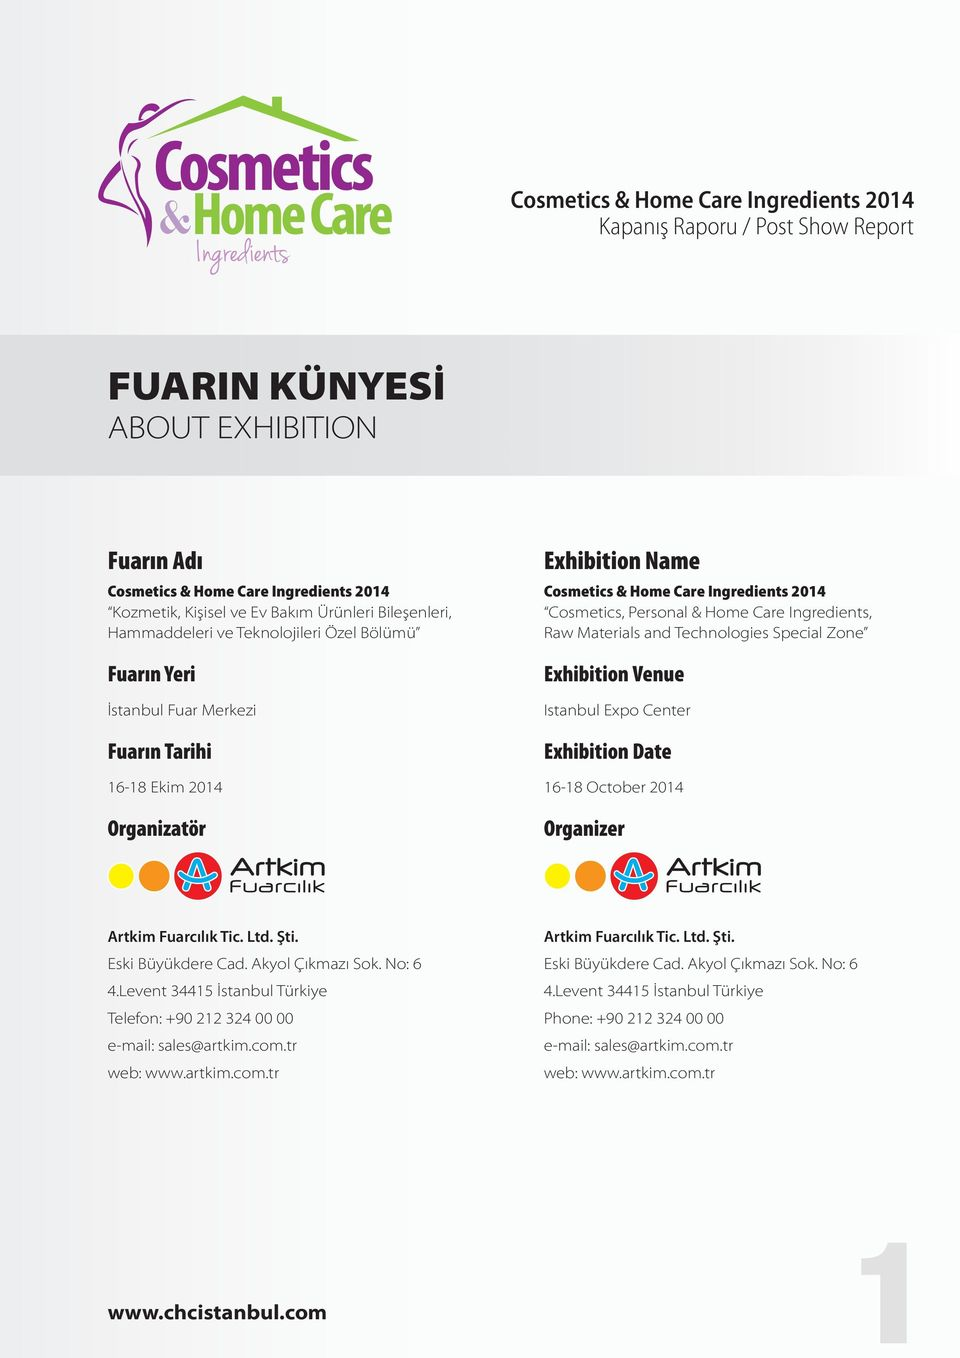 Exhibition Venue Istanbul Expo Center Exhibition Date 16-18 October 2014 Organizer Artkim Fuarcılık Tic. Ltd. Şti. Eski Büyükdere Cad. Akyol Çıkmazı Sok. No: 6 4.